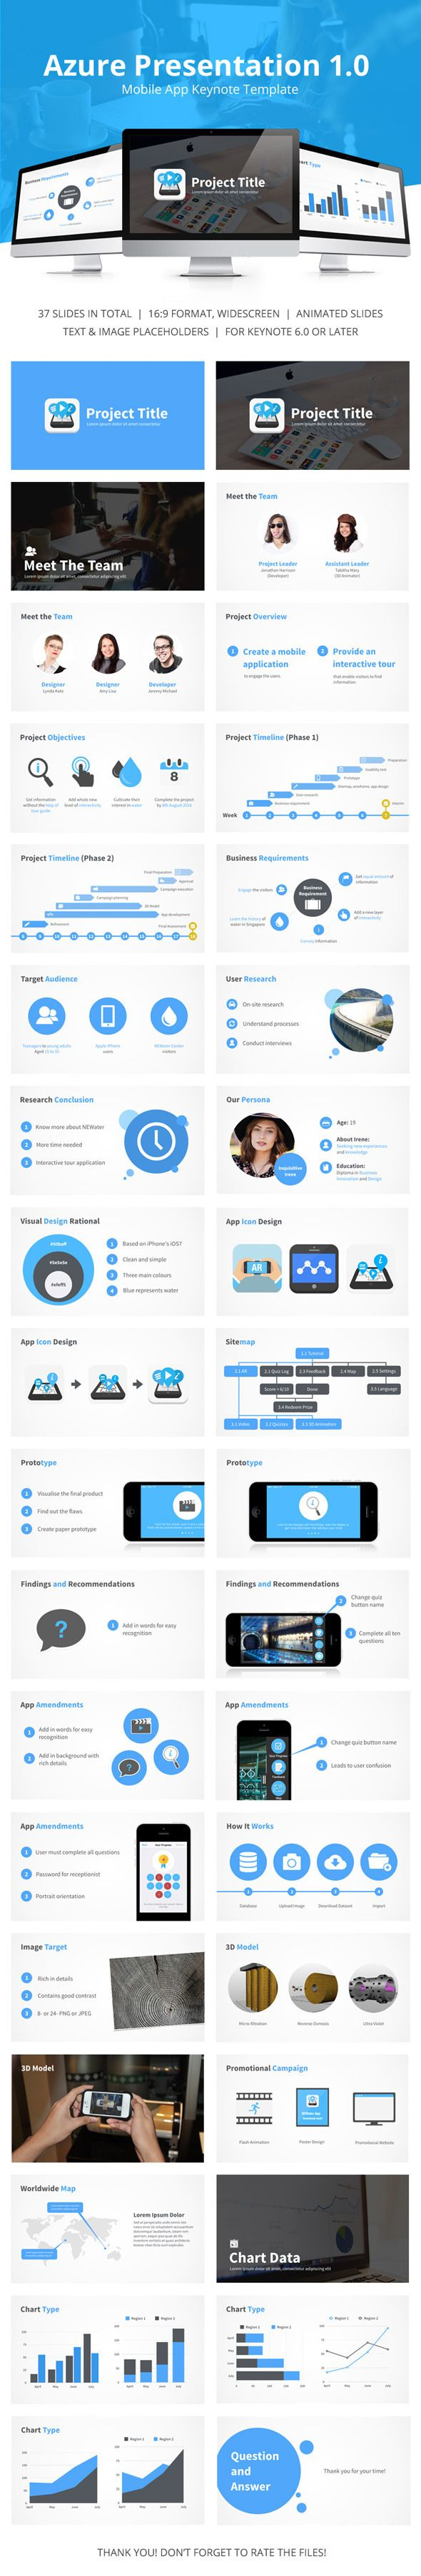 246 best business presentation images on pinterest business azure mobile app presentation toneelgroepblik Gallery